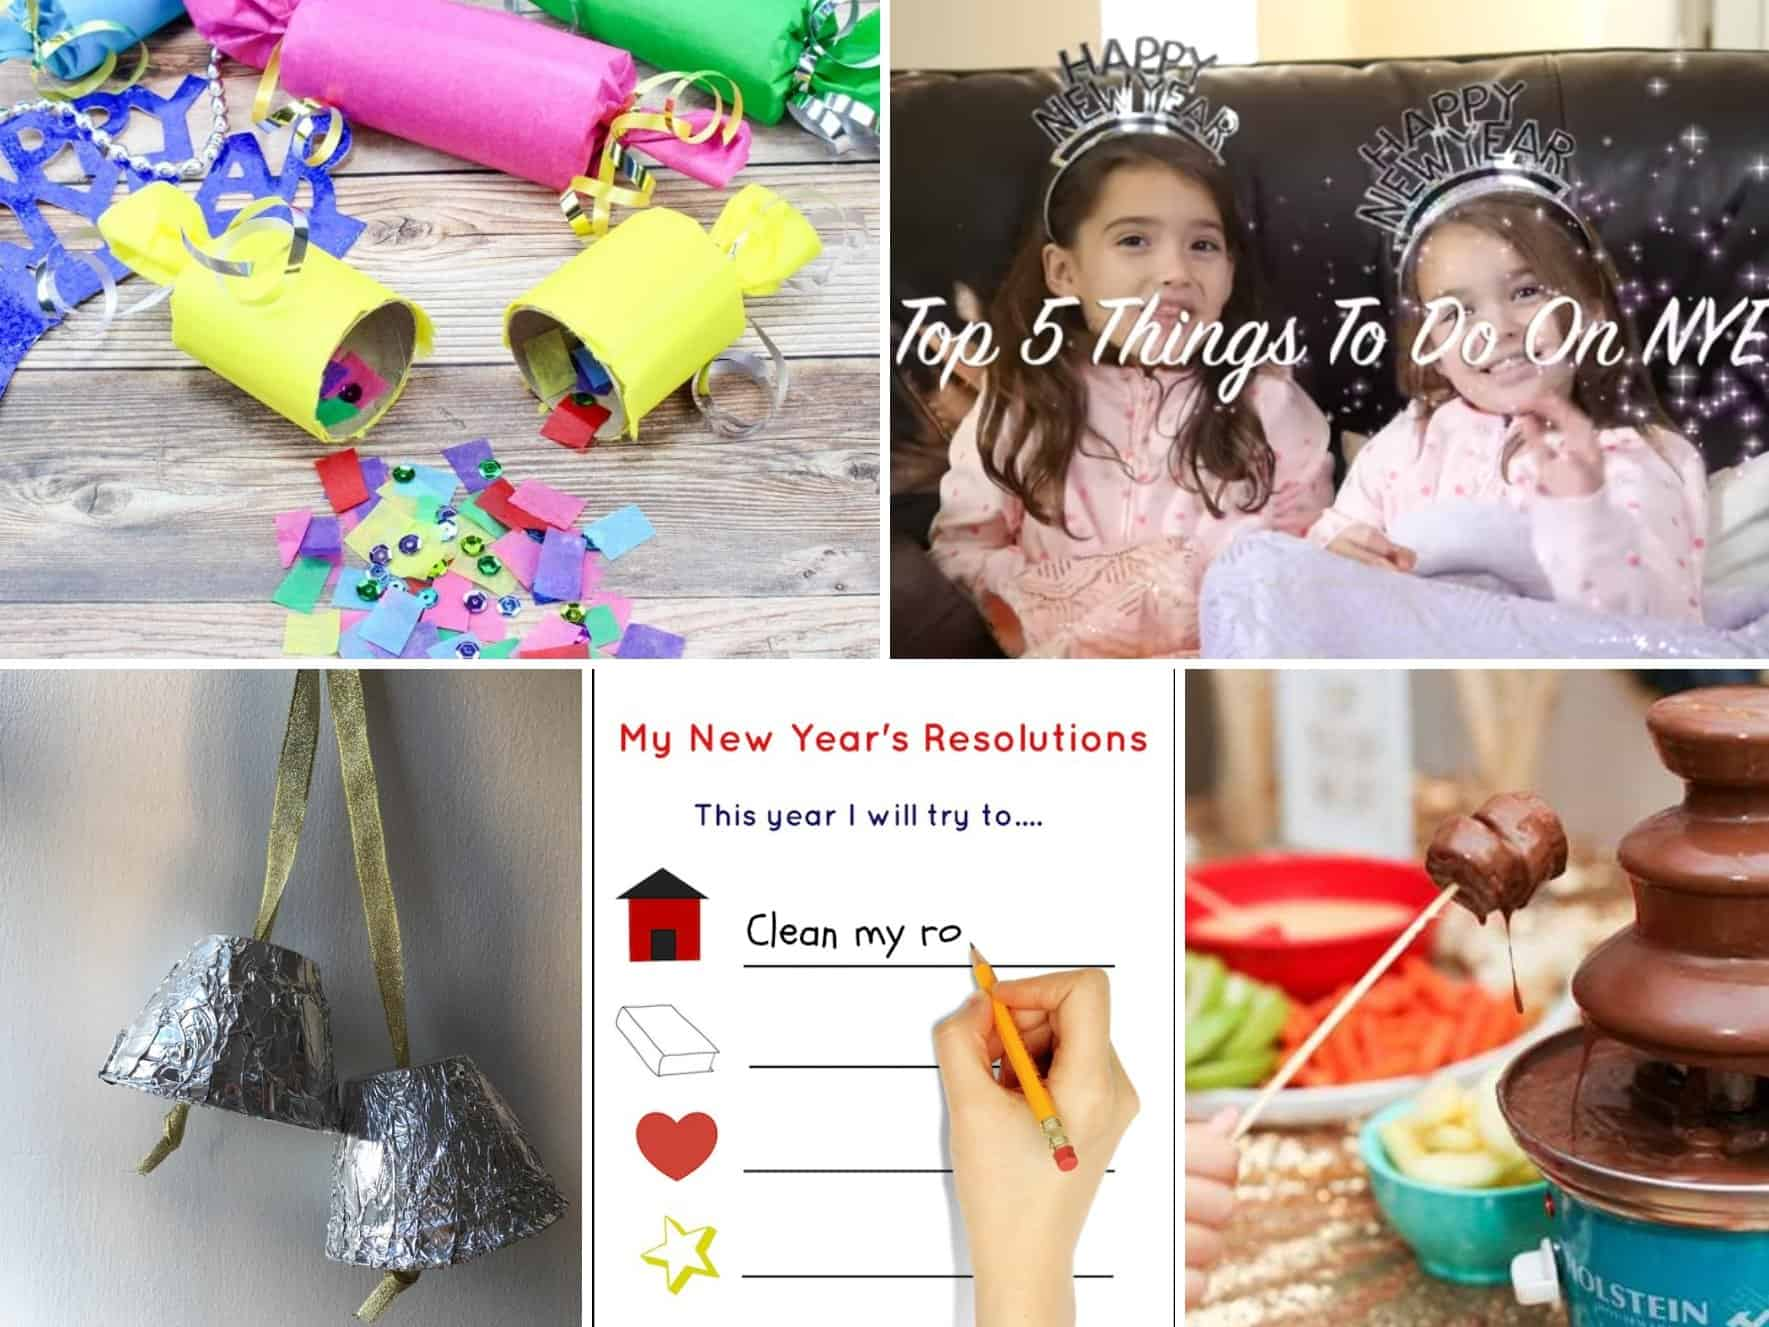 Bringing in the New Year with Your Kids